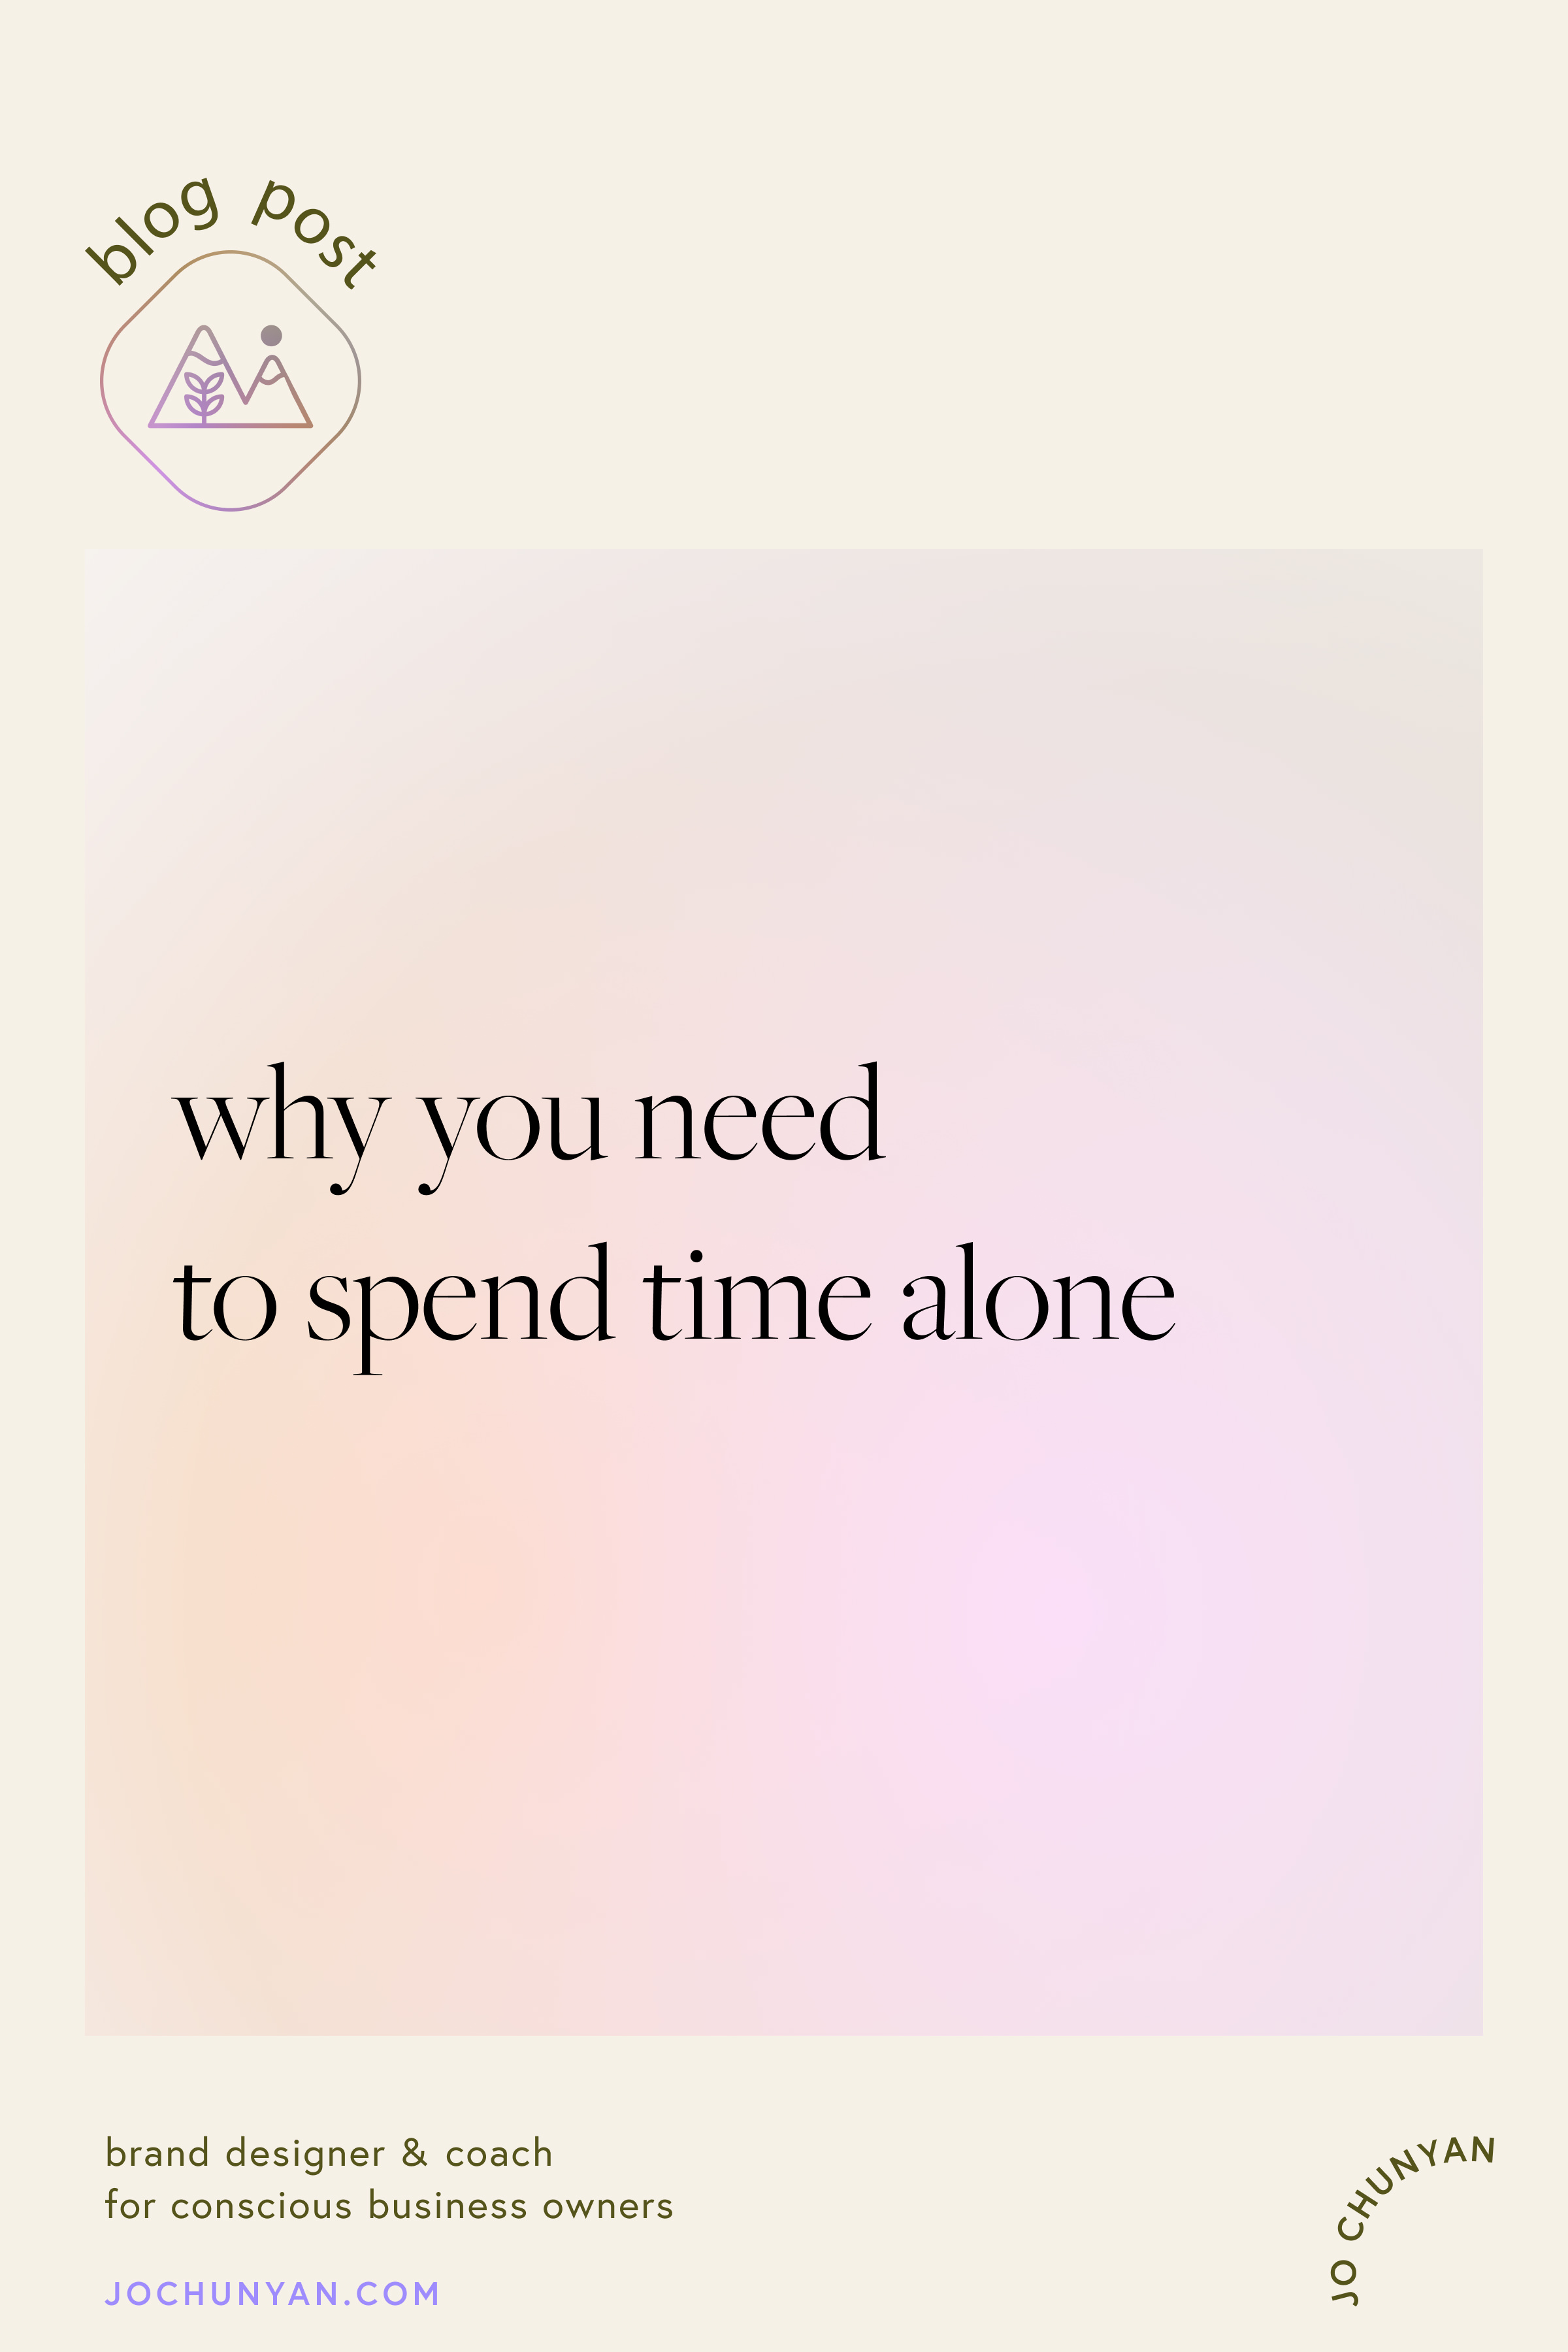 Why you need to spend time alone